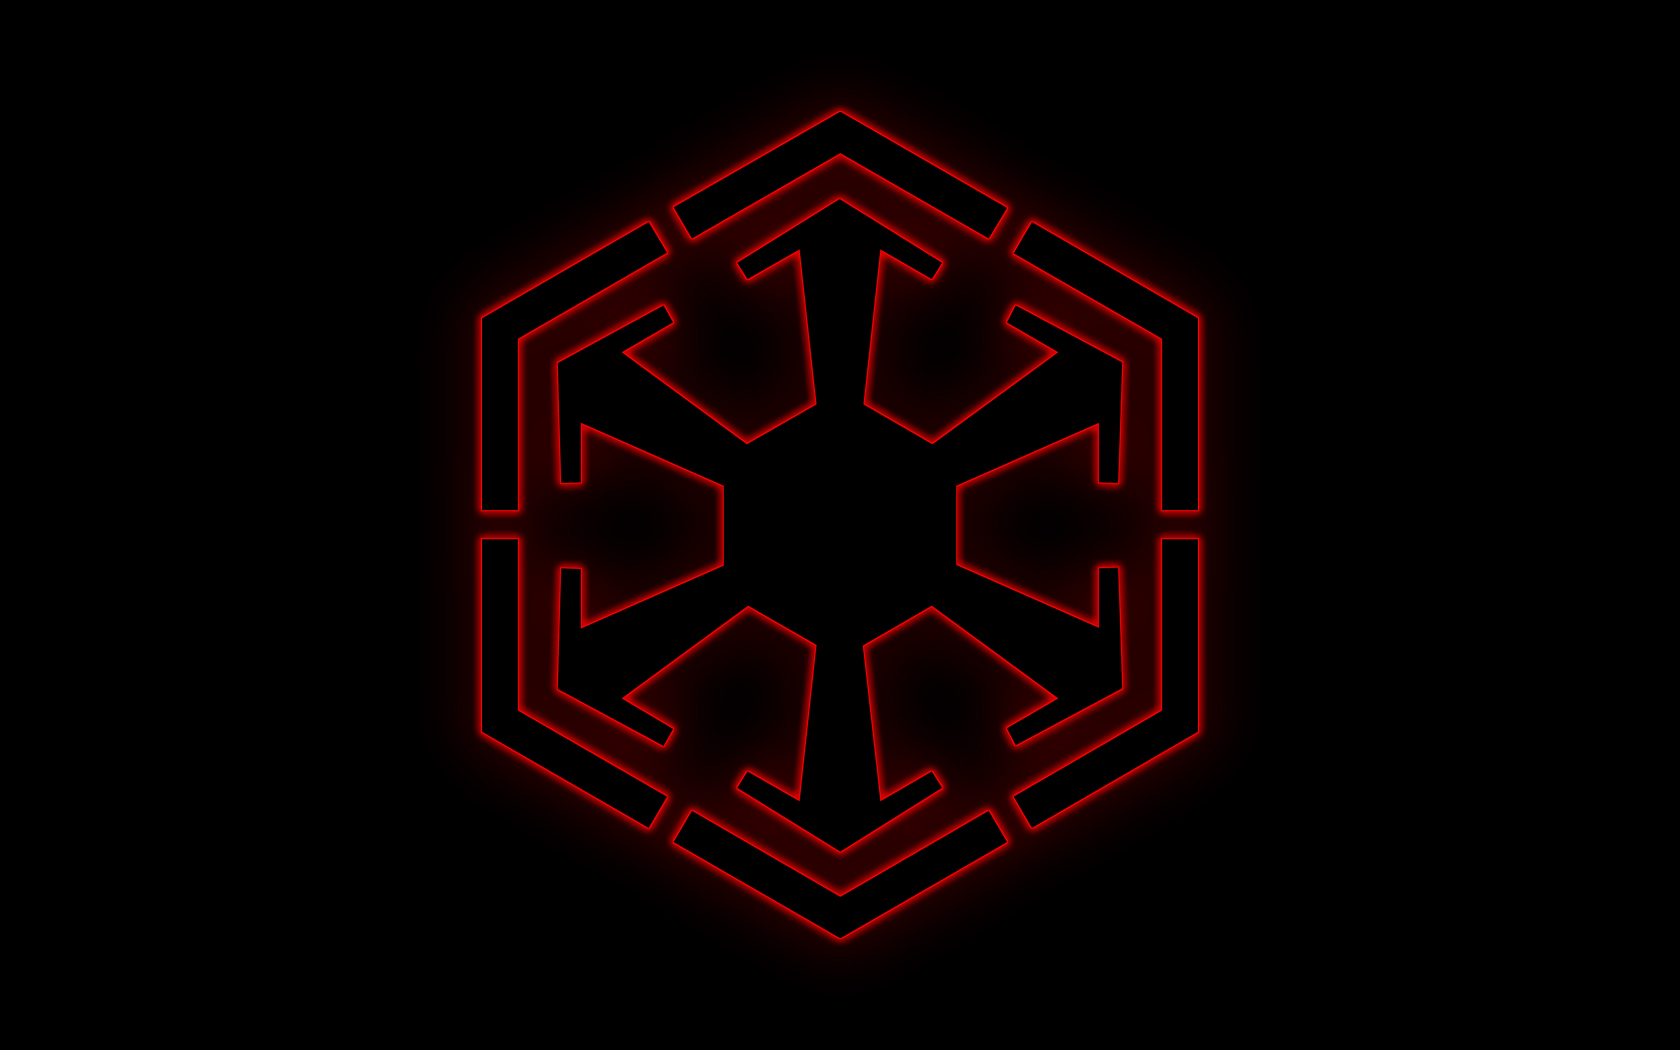 Free Download Sith Empire Logo Wallpaper Galactic Empire By Darkdoe4 1680x1050 For Your Desktop Mobile Tablet Explore 49 Sith Empire Wallpaper Star Wars Empire Wallpaper Best Sith Wallpaper Star